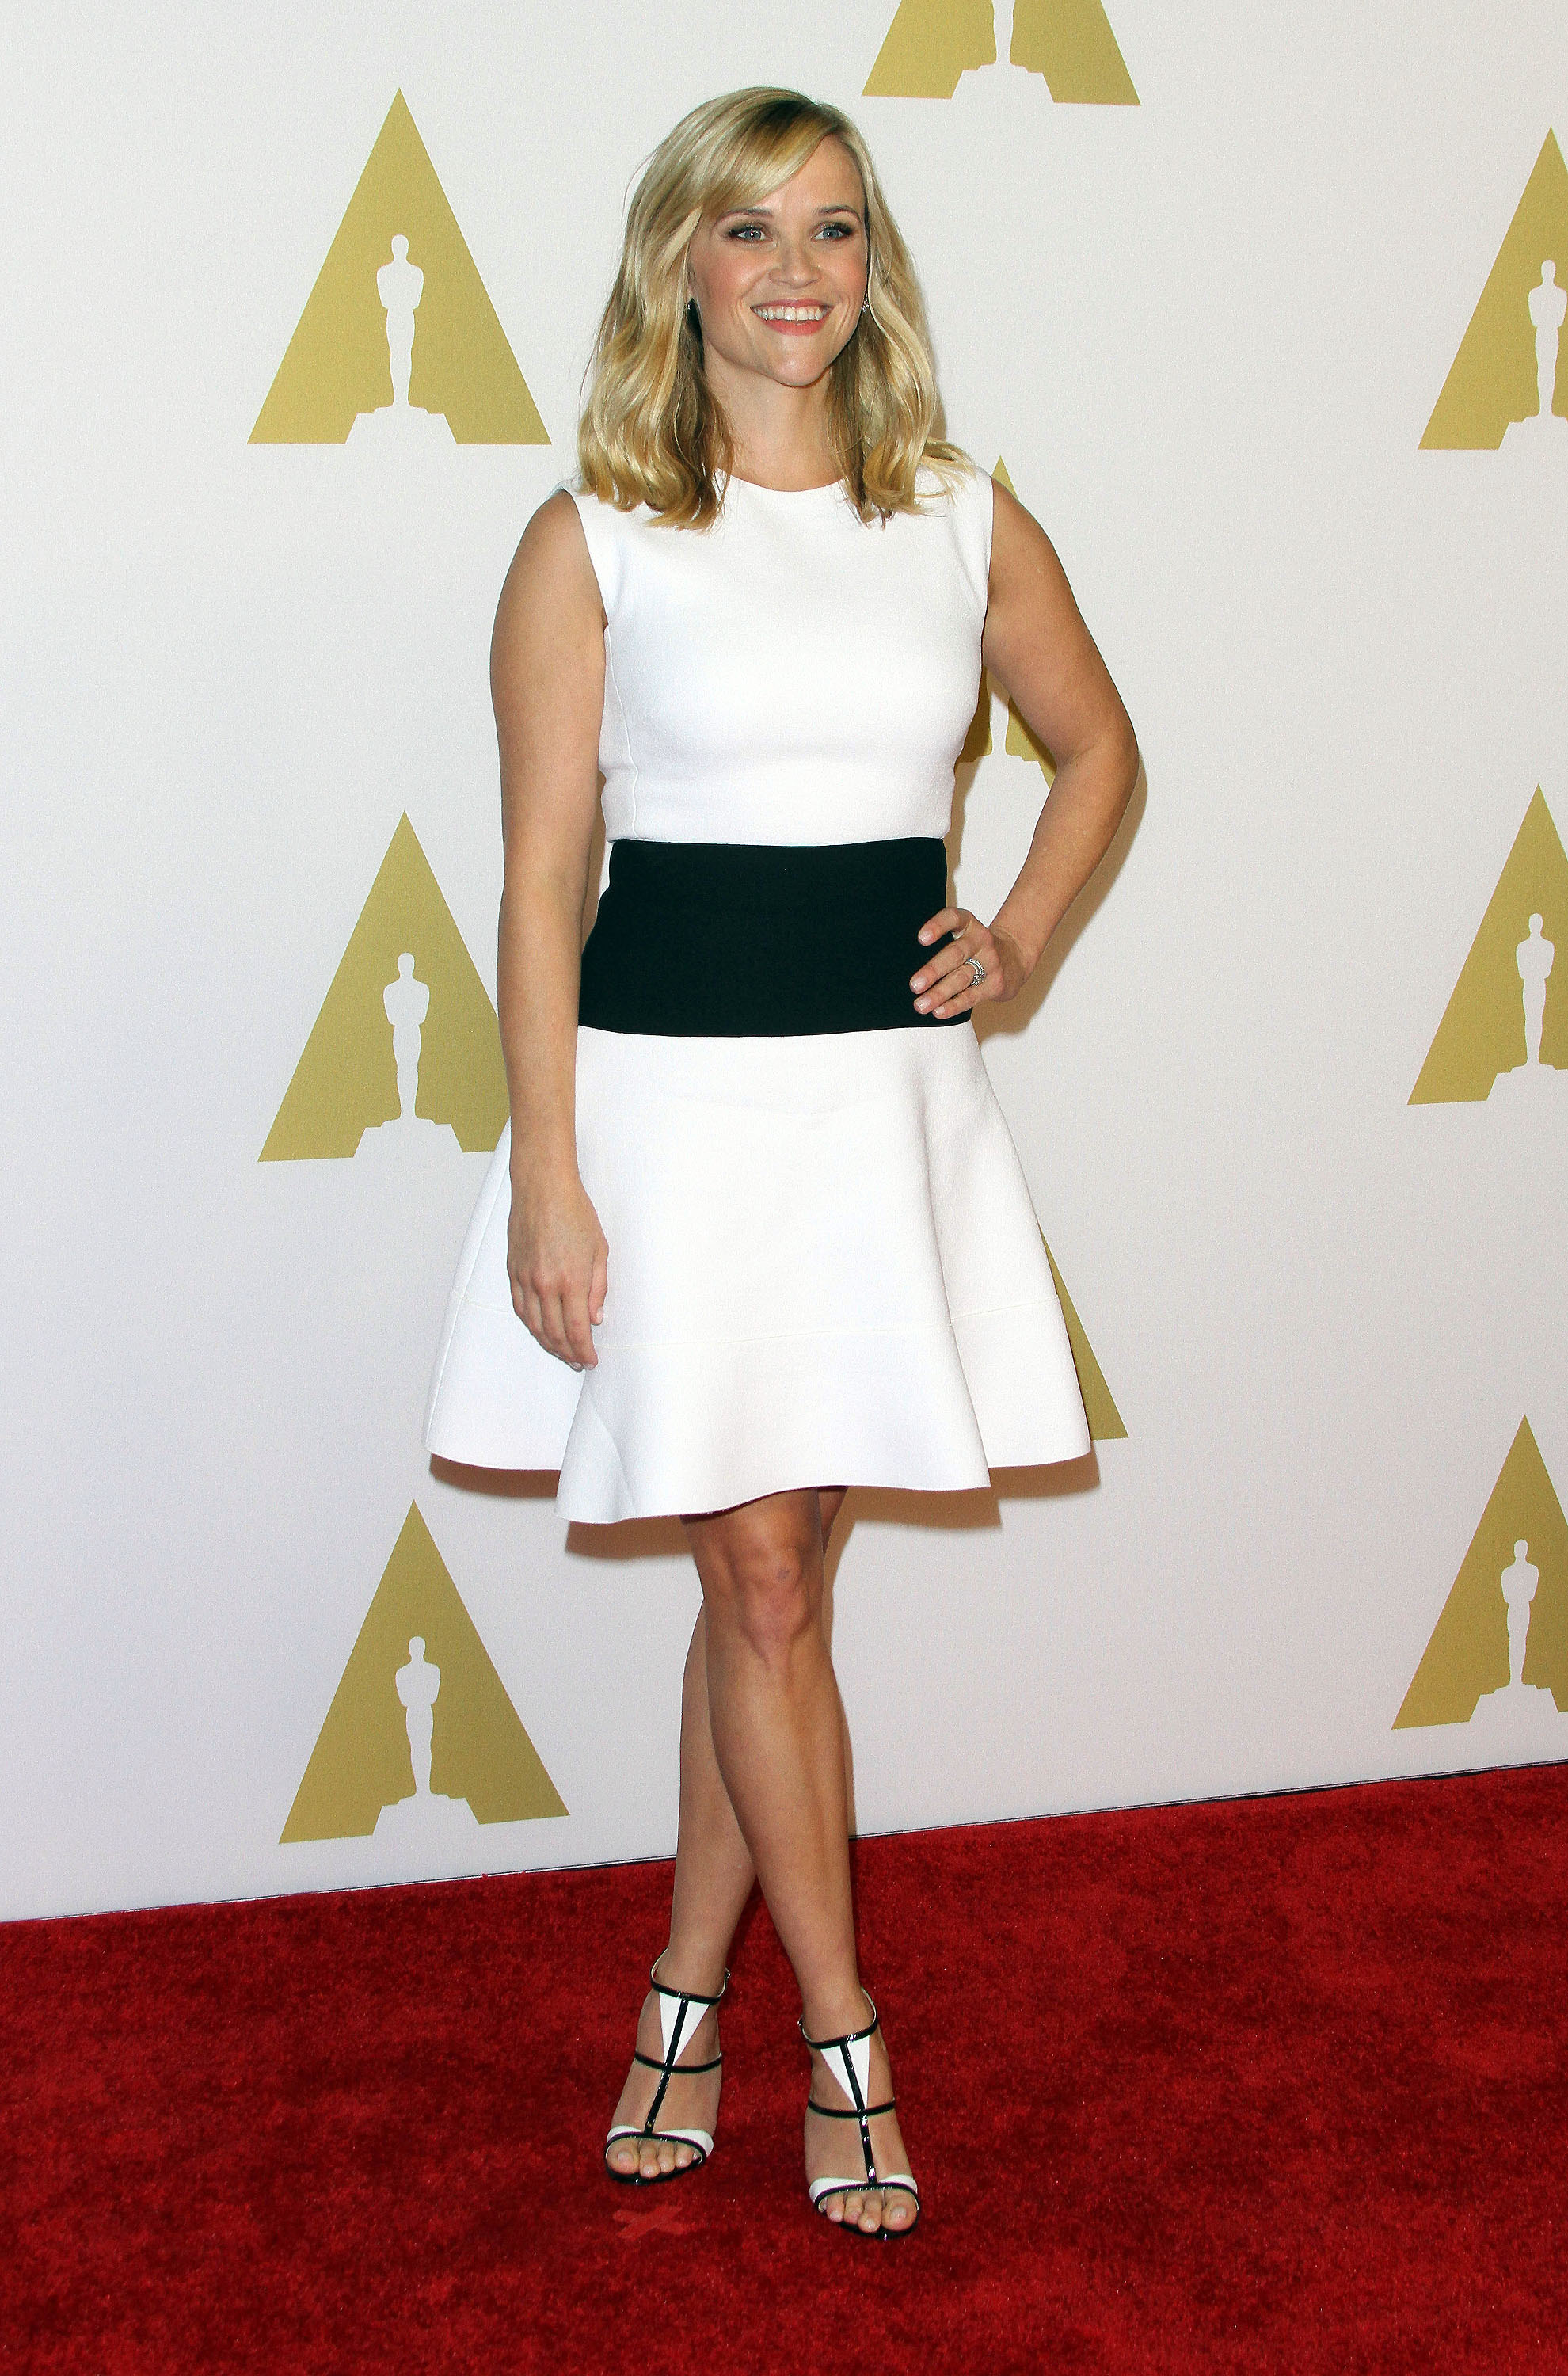 Reese Witherspoon Hot Images, Sexy Pics & Videos